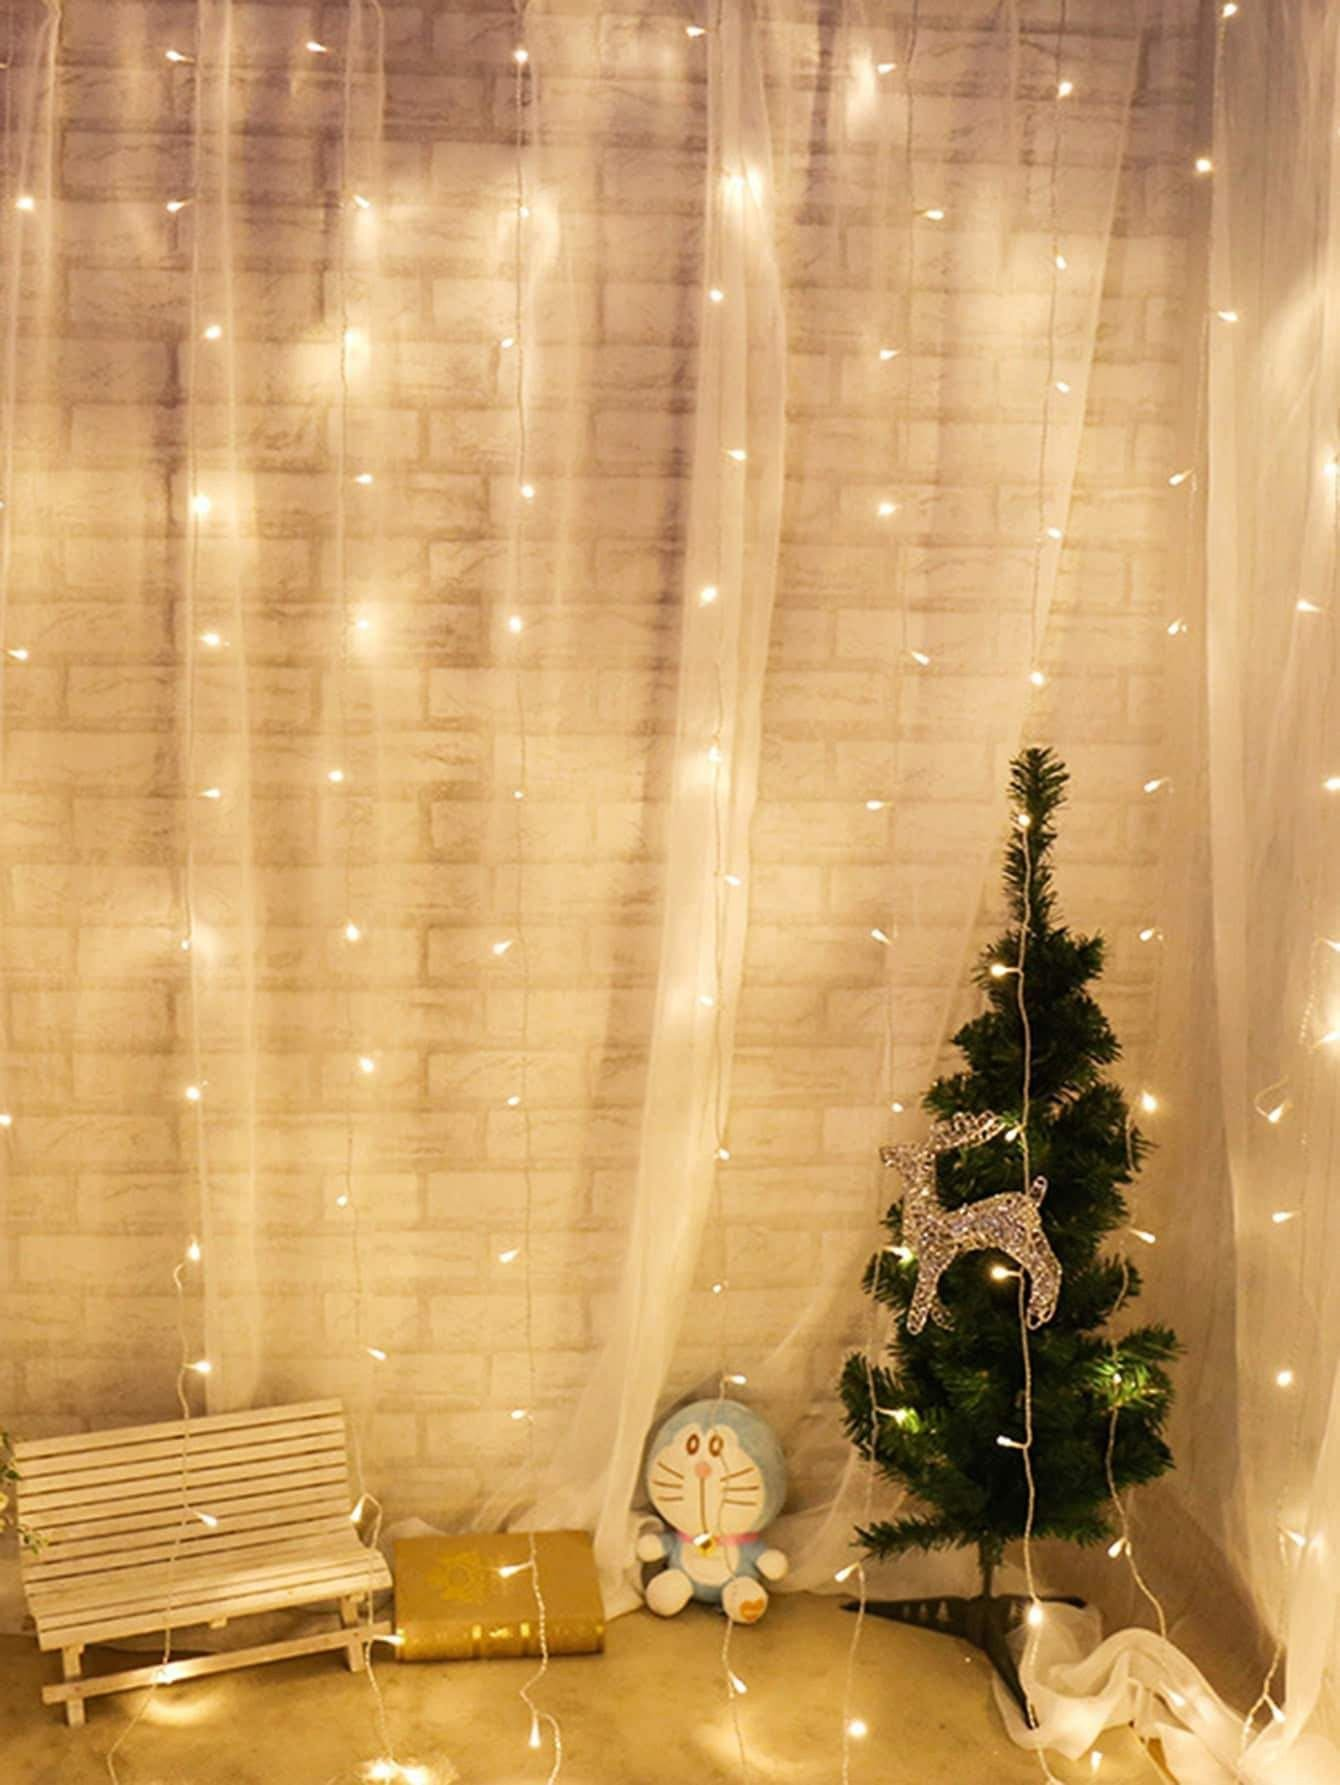 Best String Light for Bedroom Beautiful Pin On Lighting & Lamps